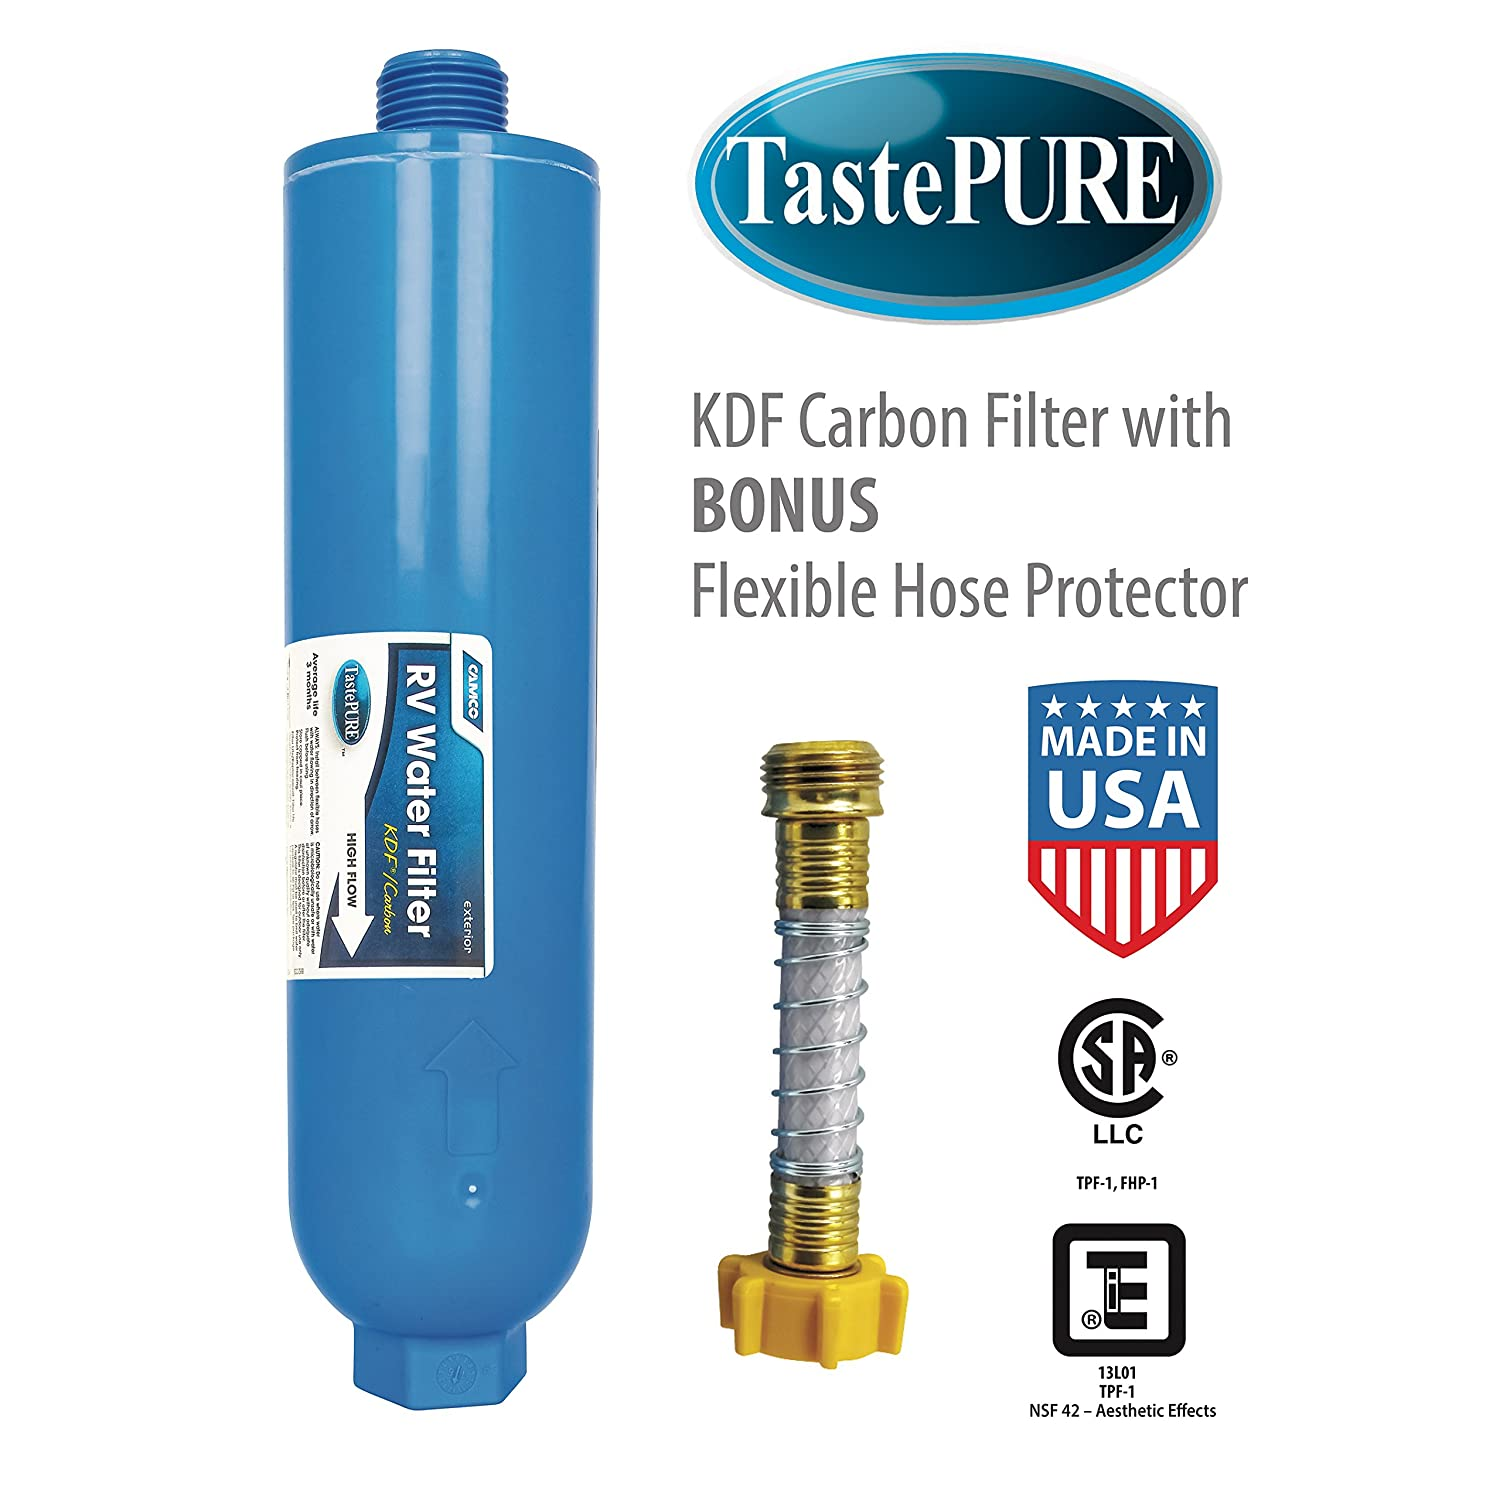 Amazon.com: Camco TastePURE Water Filter with Flexible Hose ...